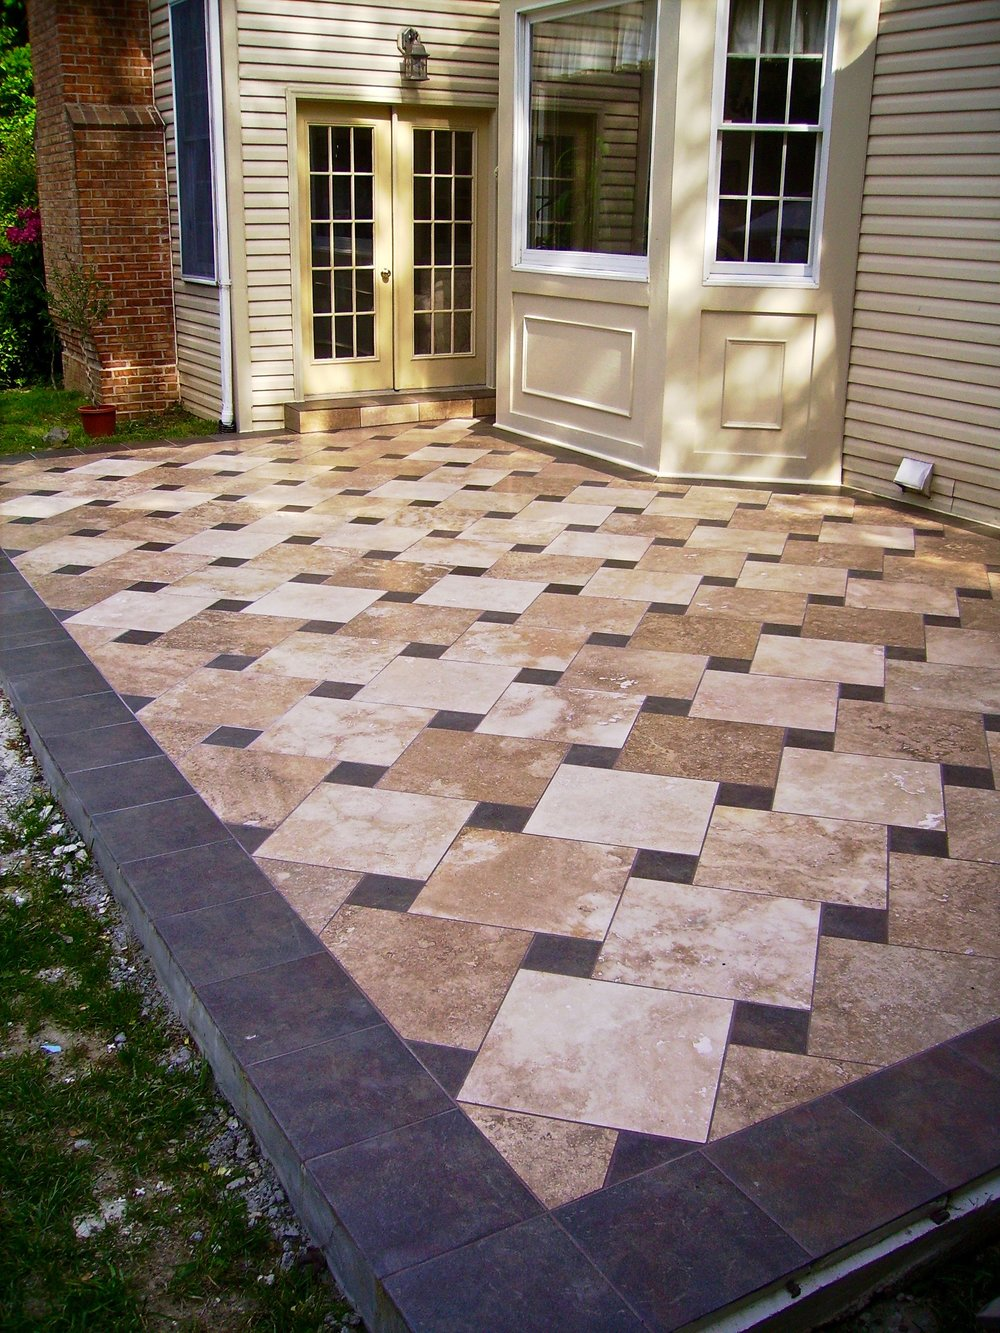 Pretty contrasting tiles cover this patio